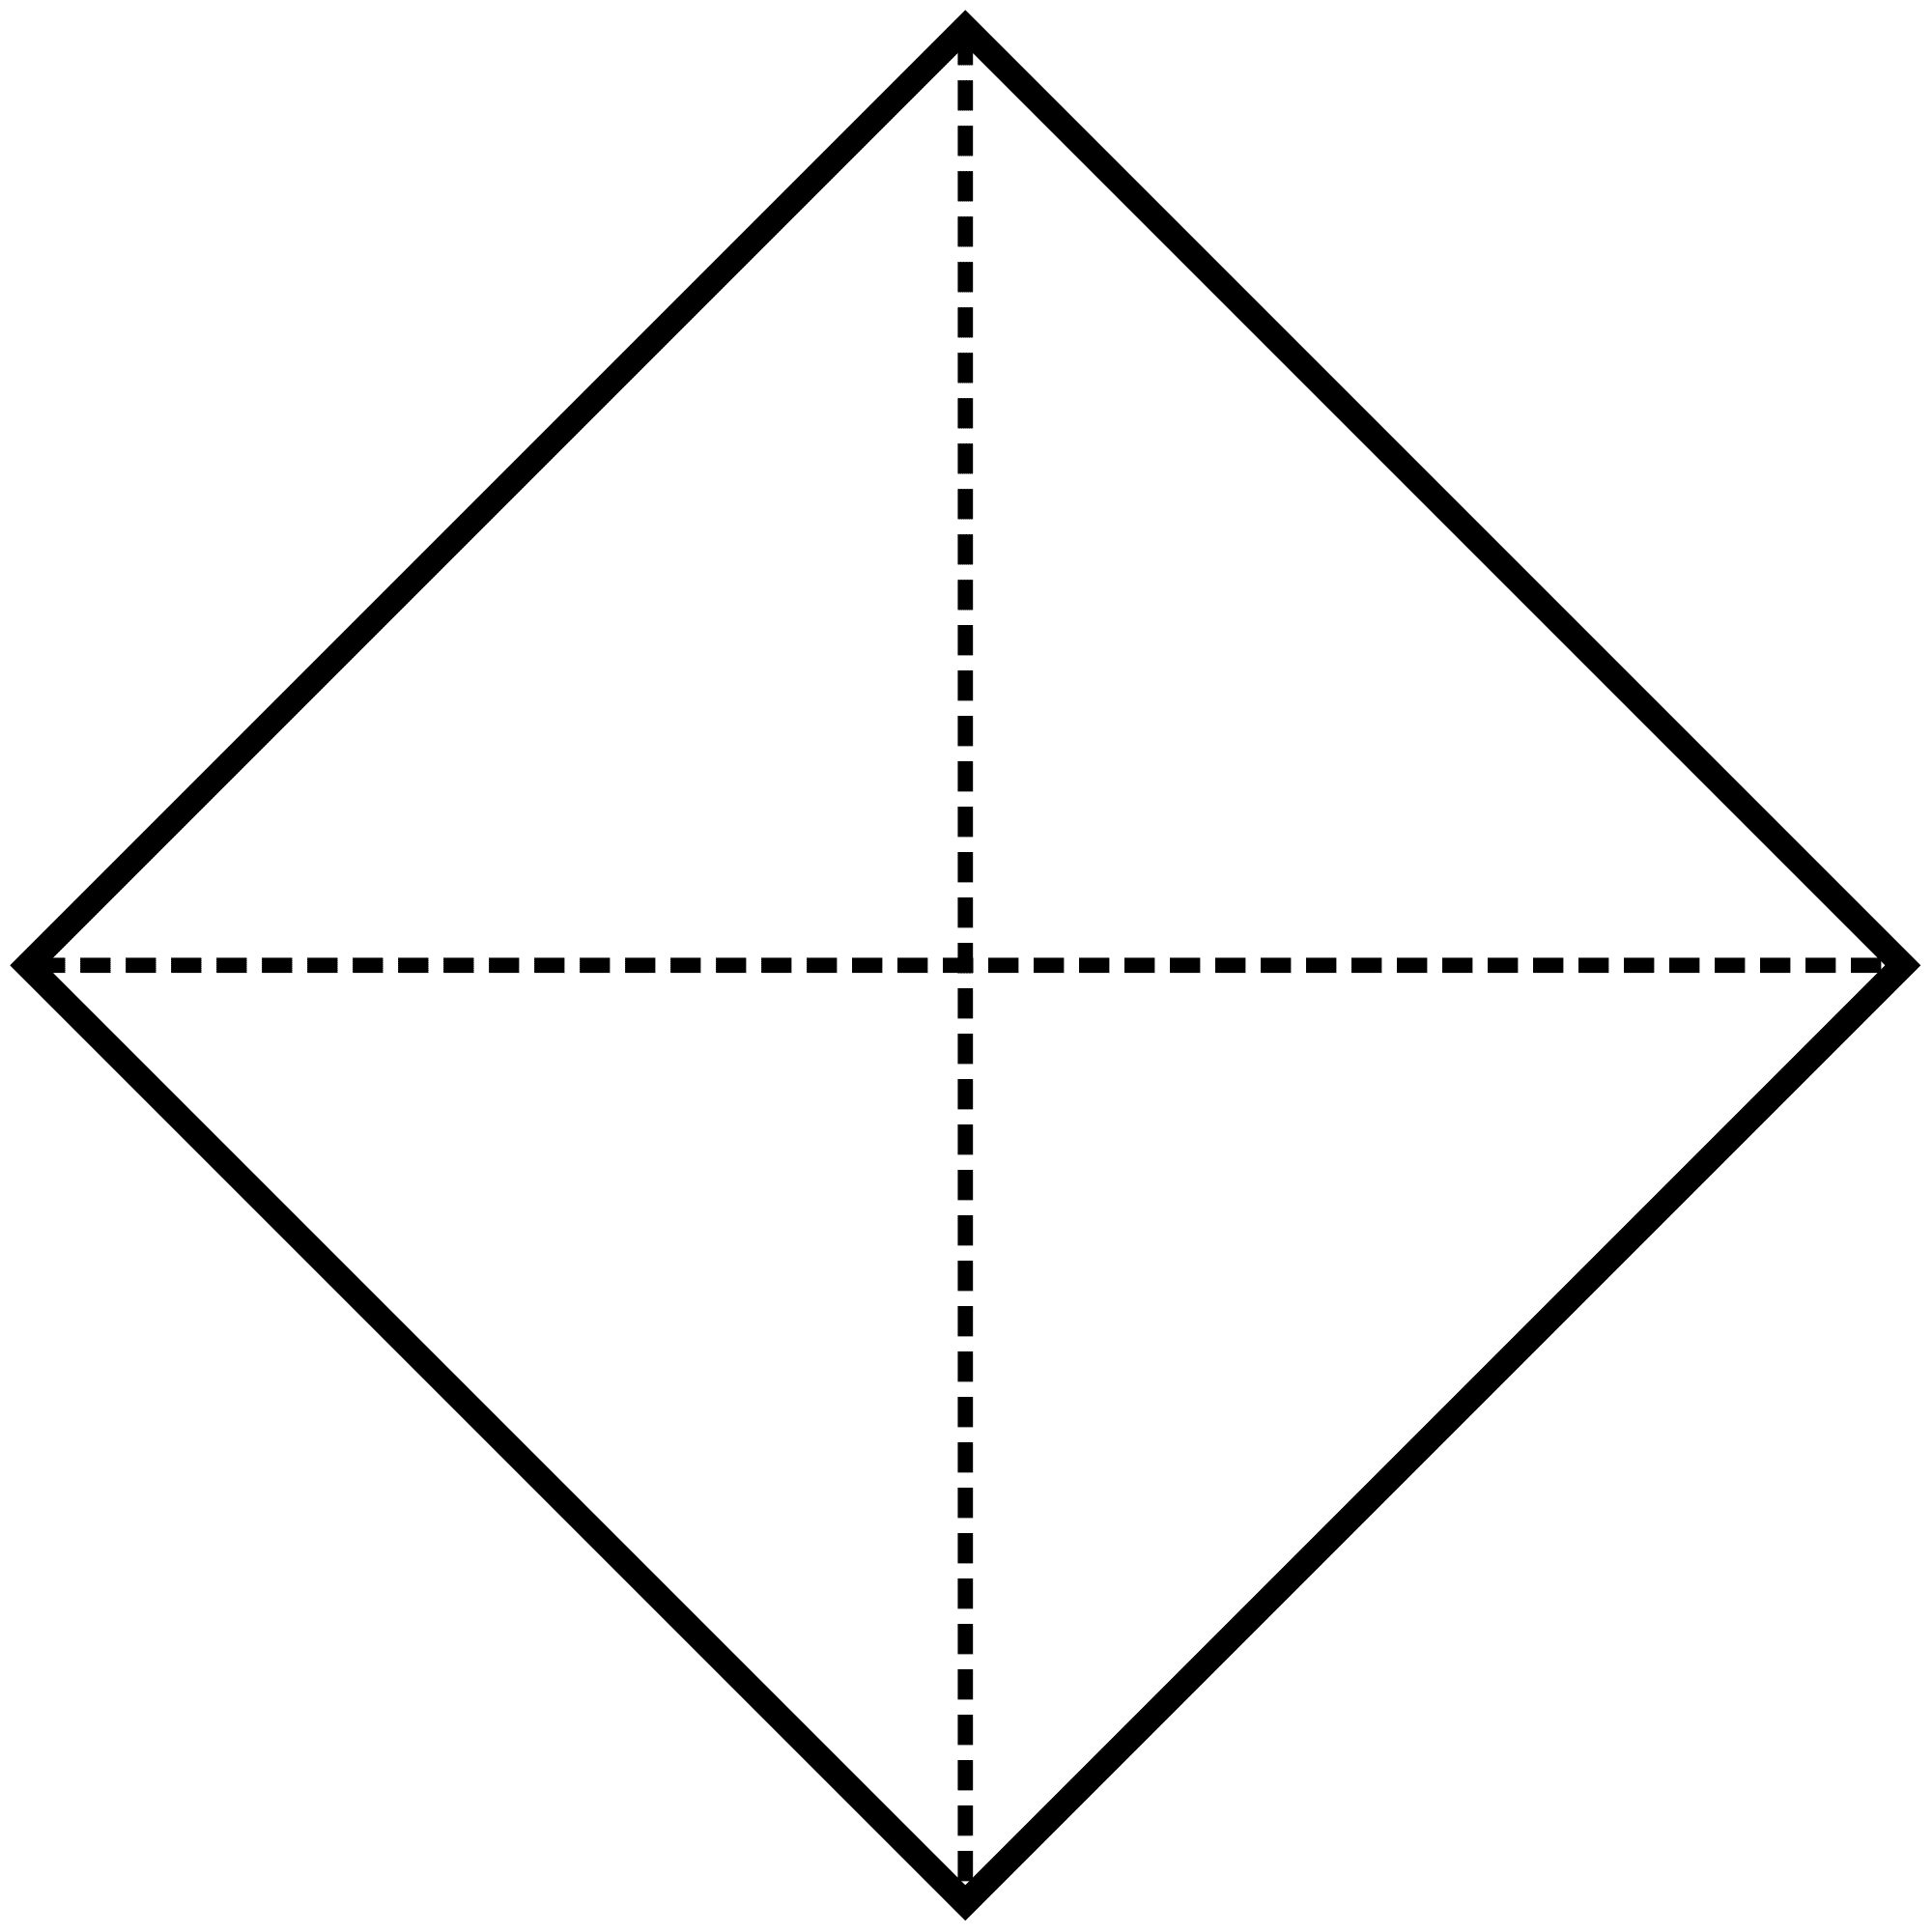 Diamond Shape Coloring Pages For Preschoolers